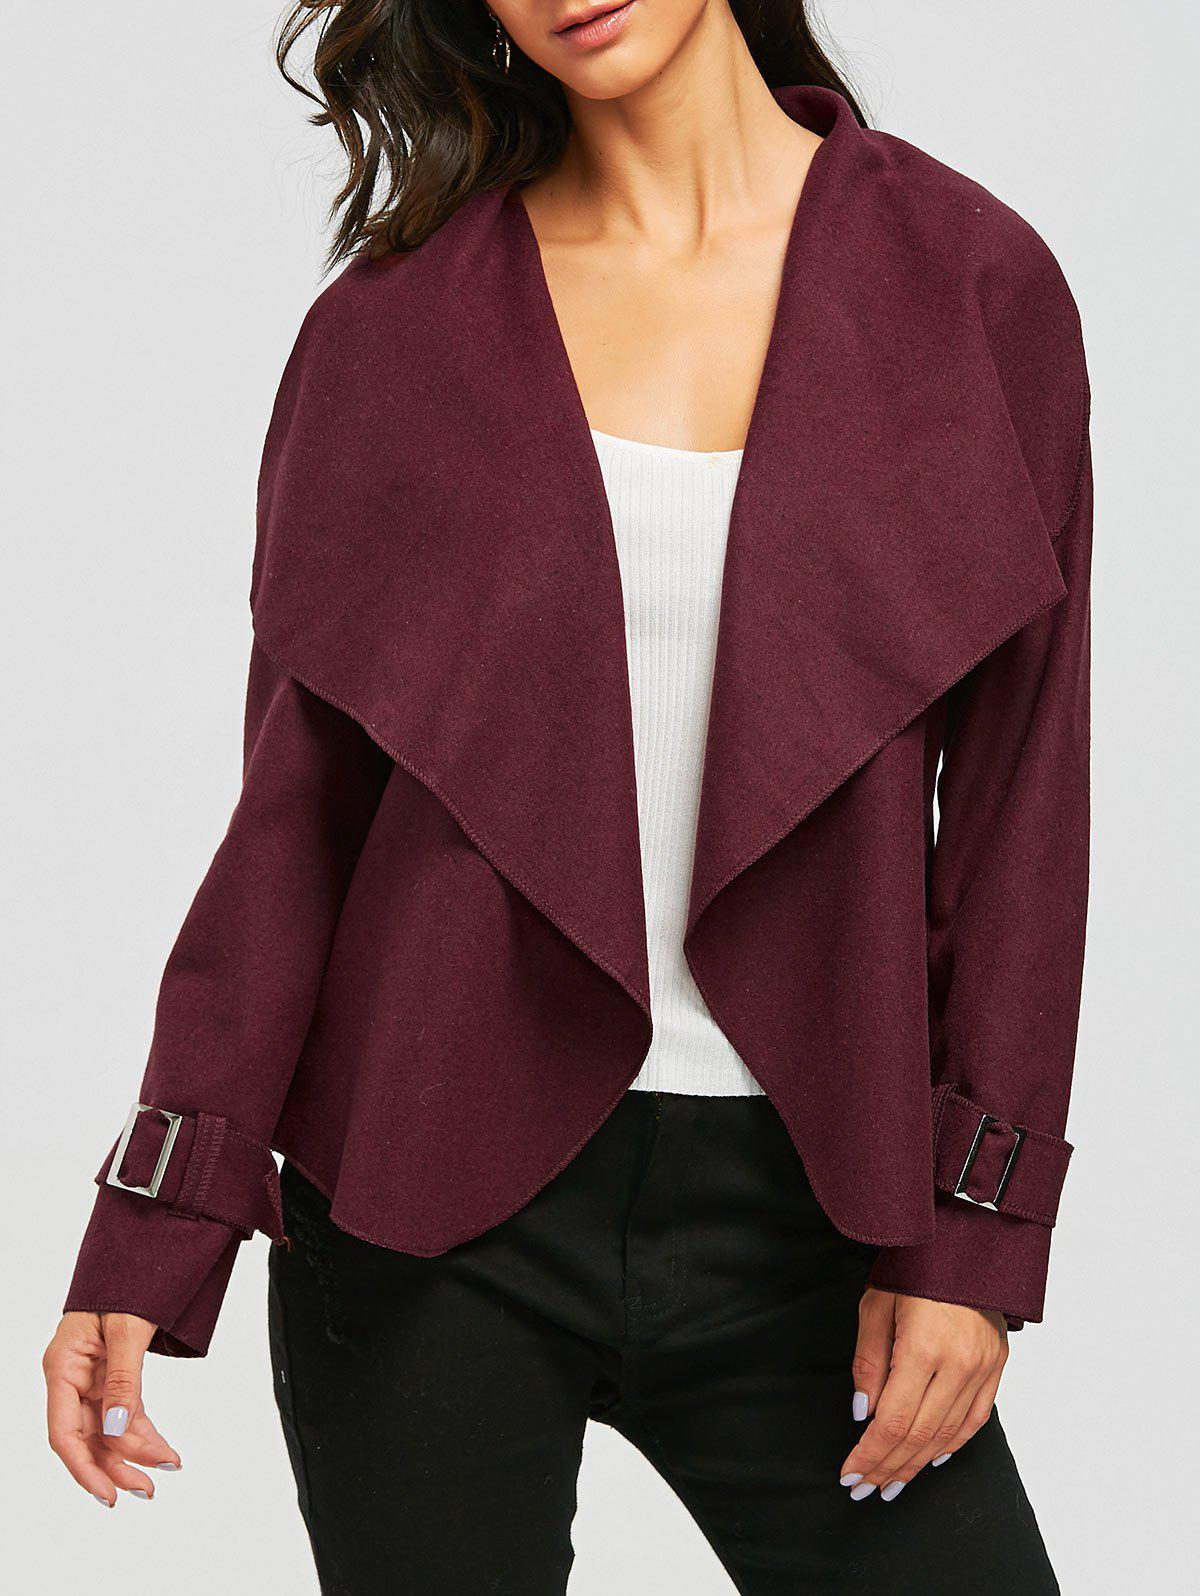 Cheap Draped Open Front Wool Blend Jacket